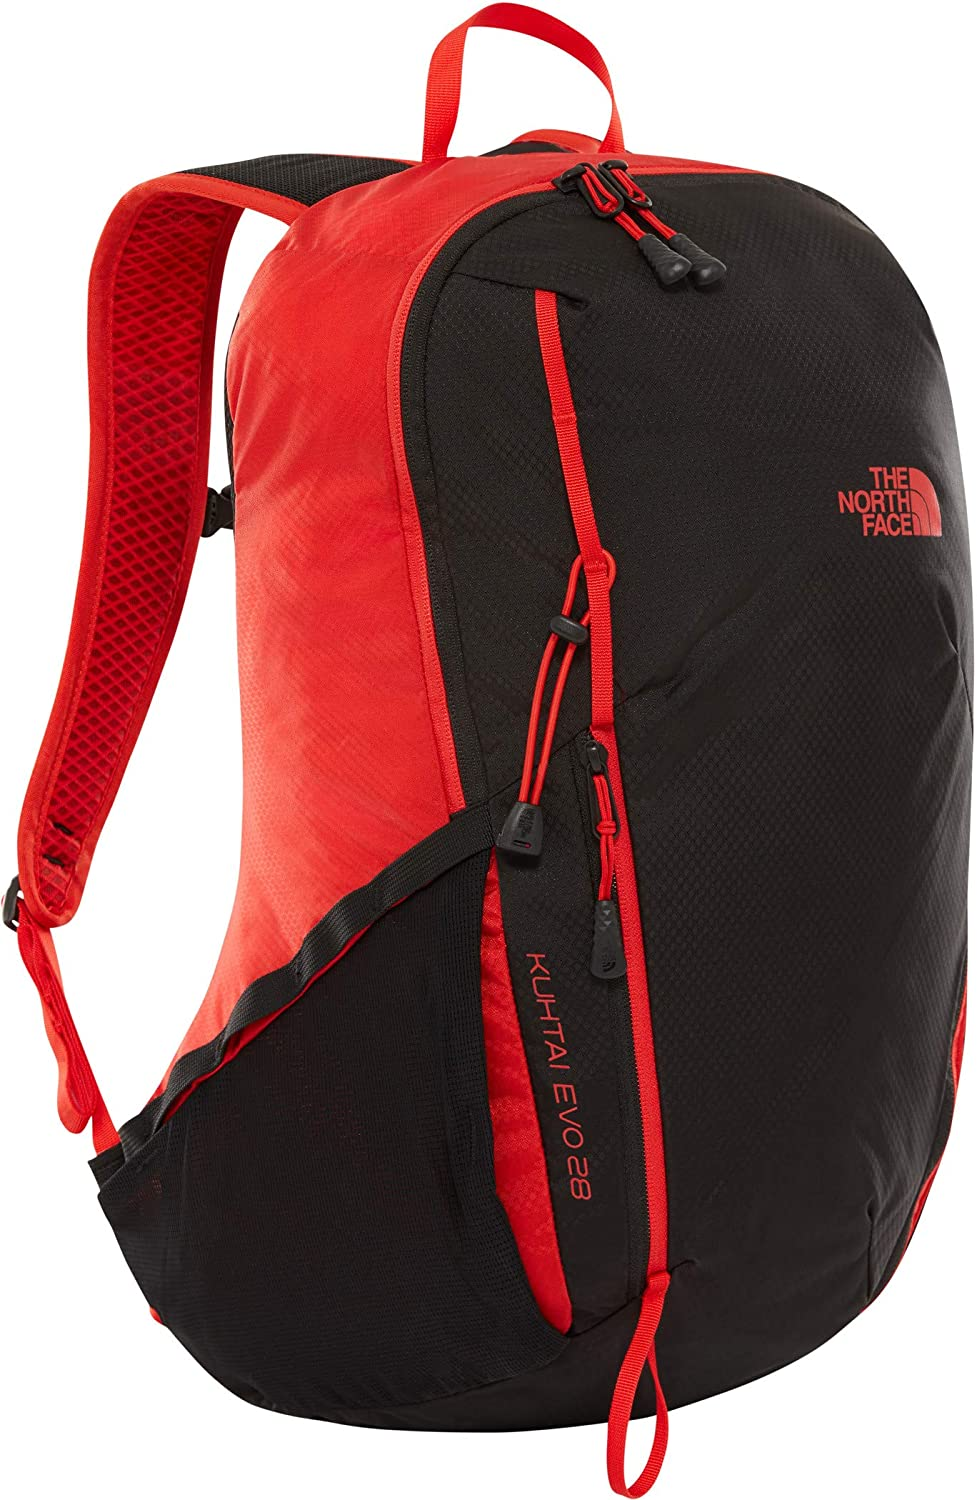 THE NORTH FACE Kuhtai Evo 28リュック - Fiery Red/Tnf Black、ワンサイズ   B07LH6XCGF